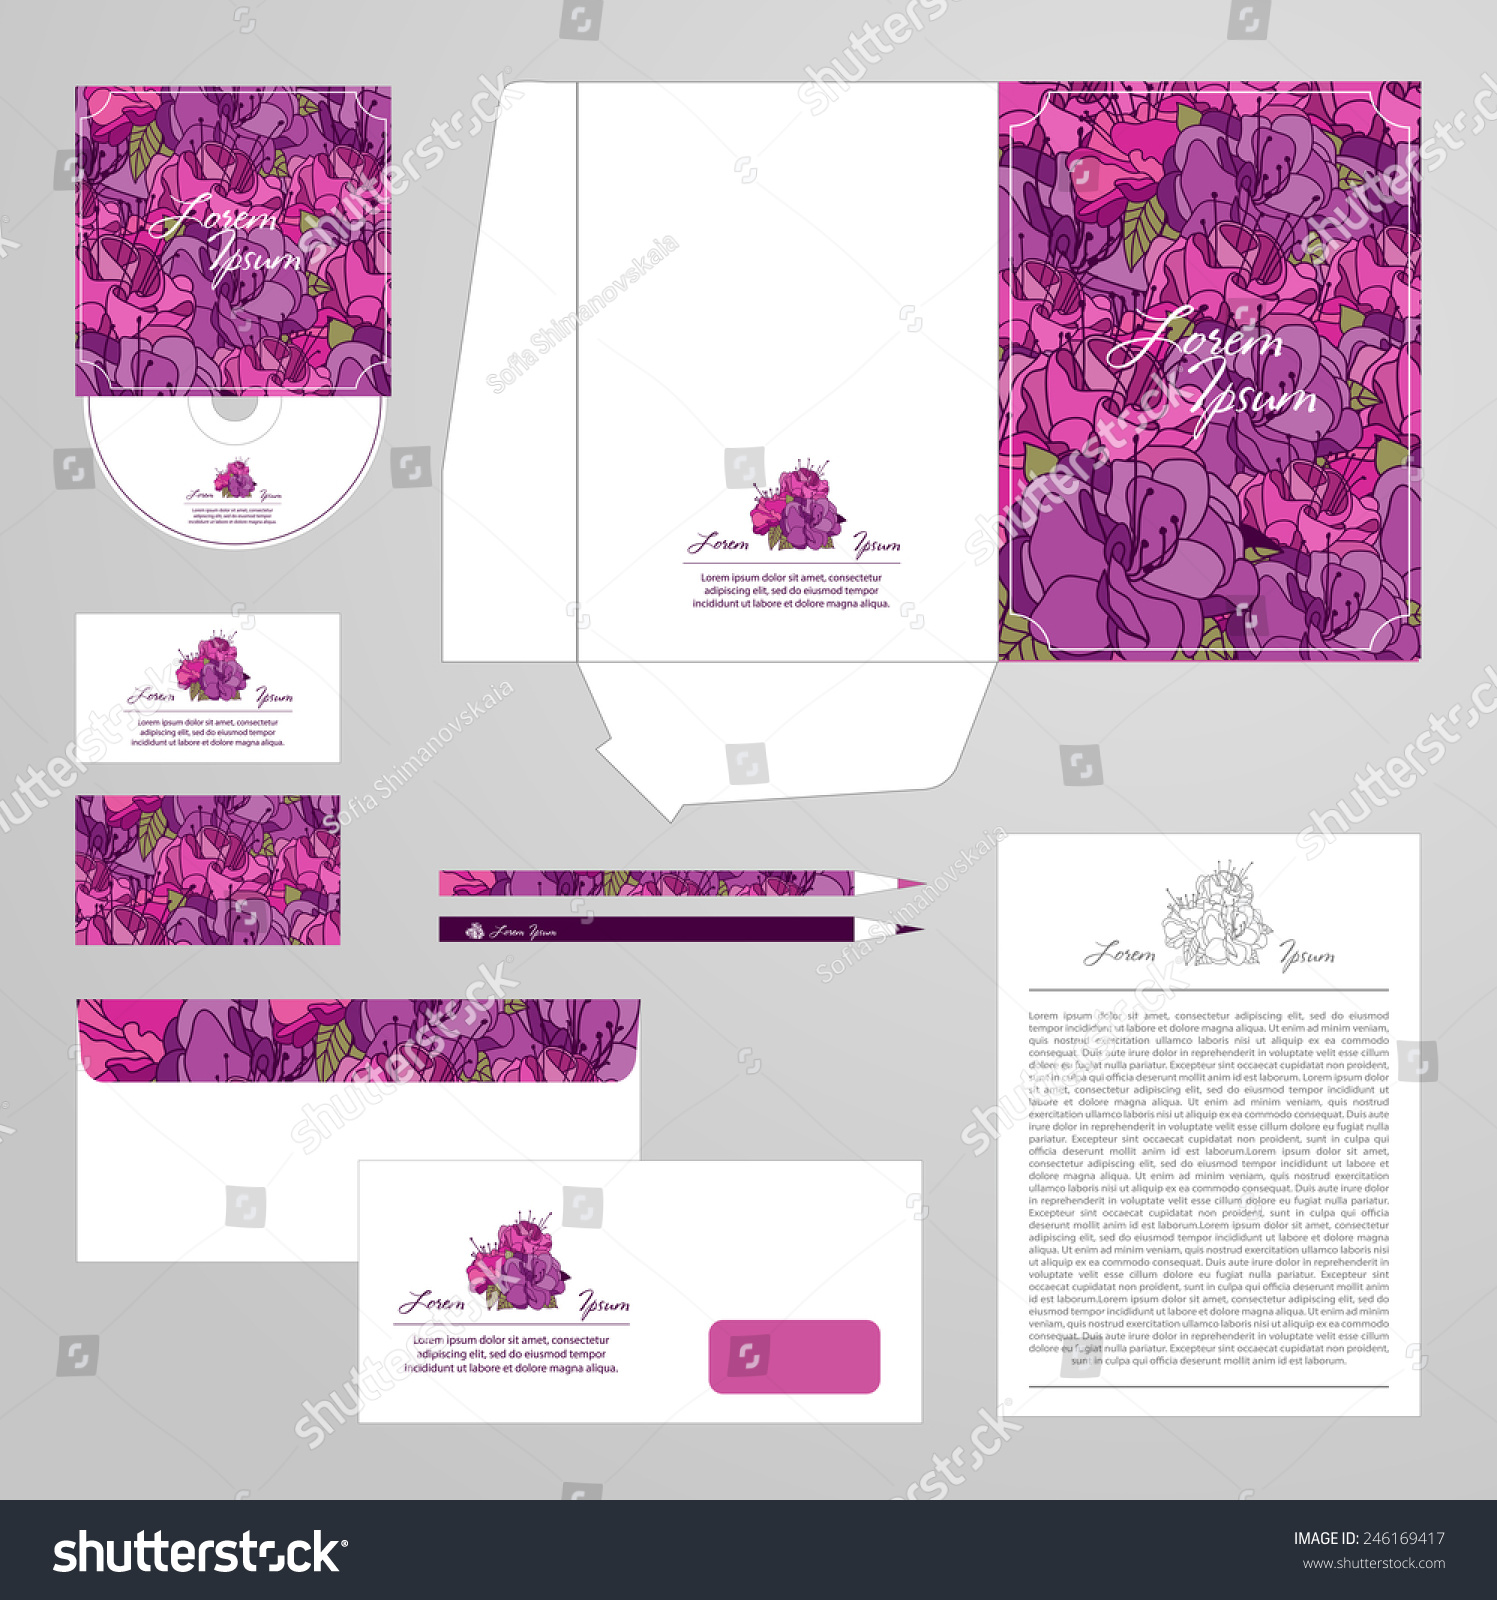 Corporate Identity Template Flower Ornament Vector Stock Vector